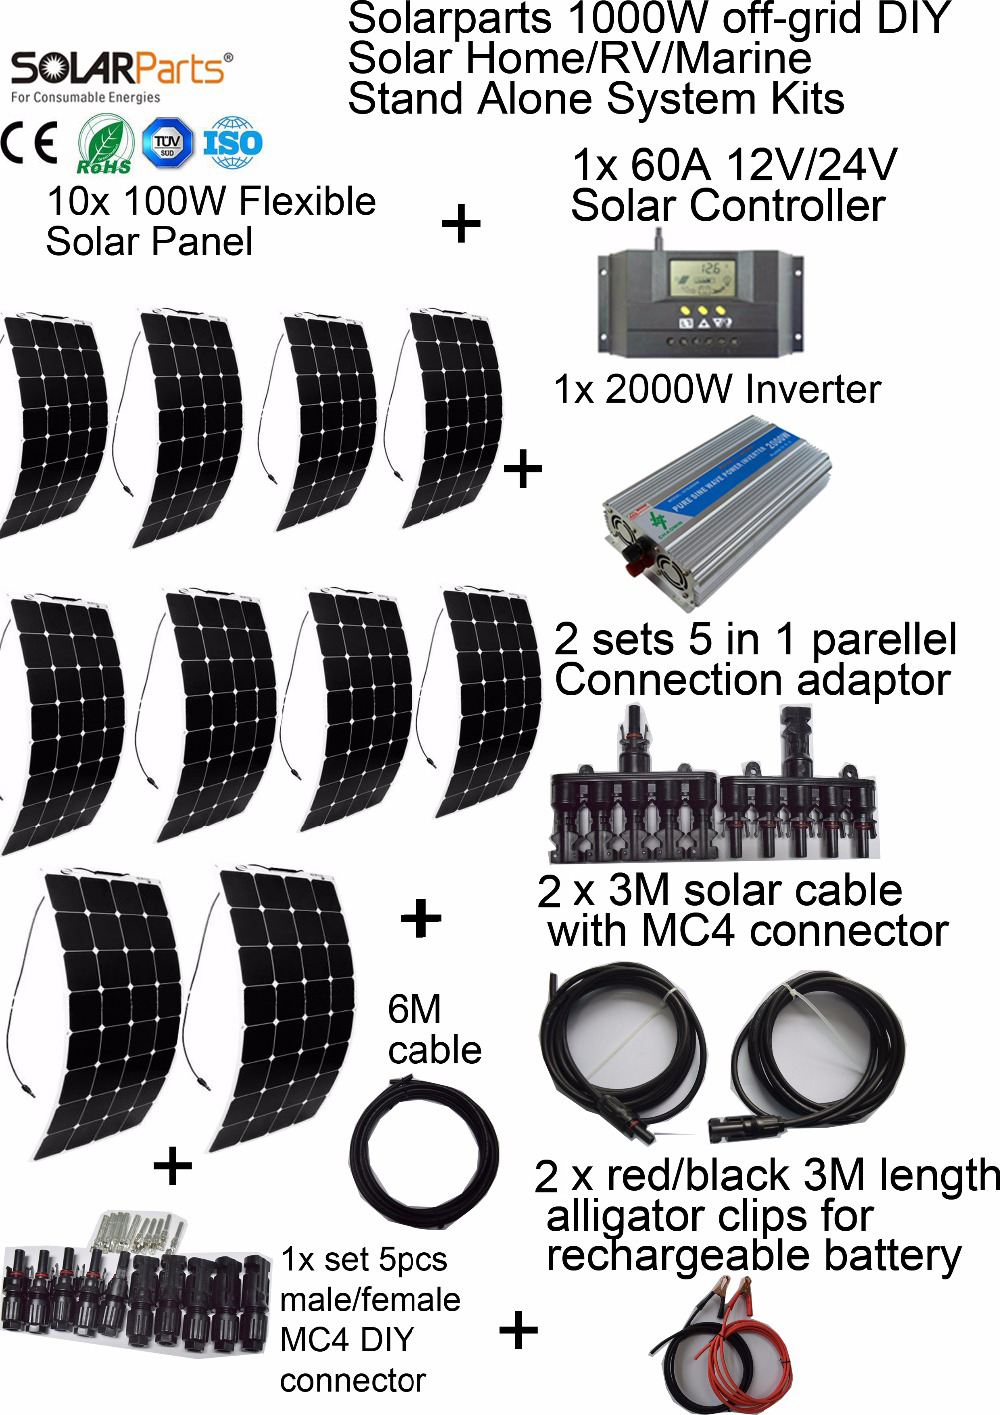 Solarparts 1000W off-grid Solar System KITS flexible solar panel +controller+inverter+cable+adaptor for RV/Marine/Camping/Home . dc house usa uk stock 300w off grid solar system kits new 100w solar module 12v home 20a controller 1000w inverter